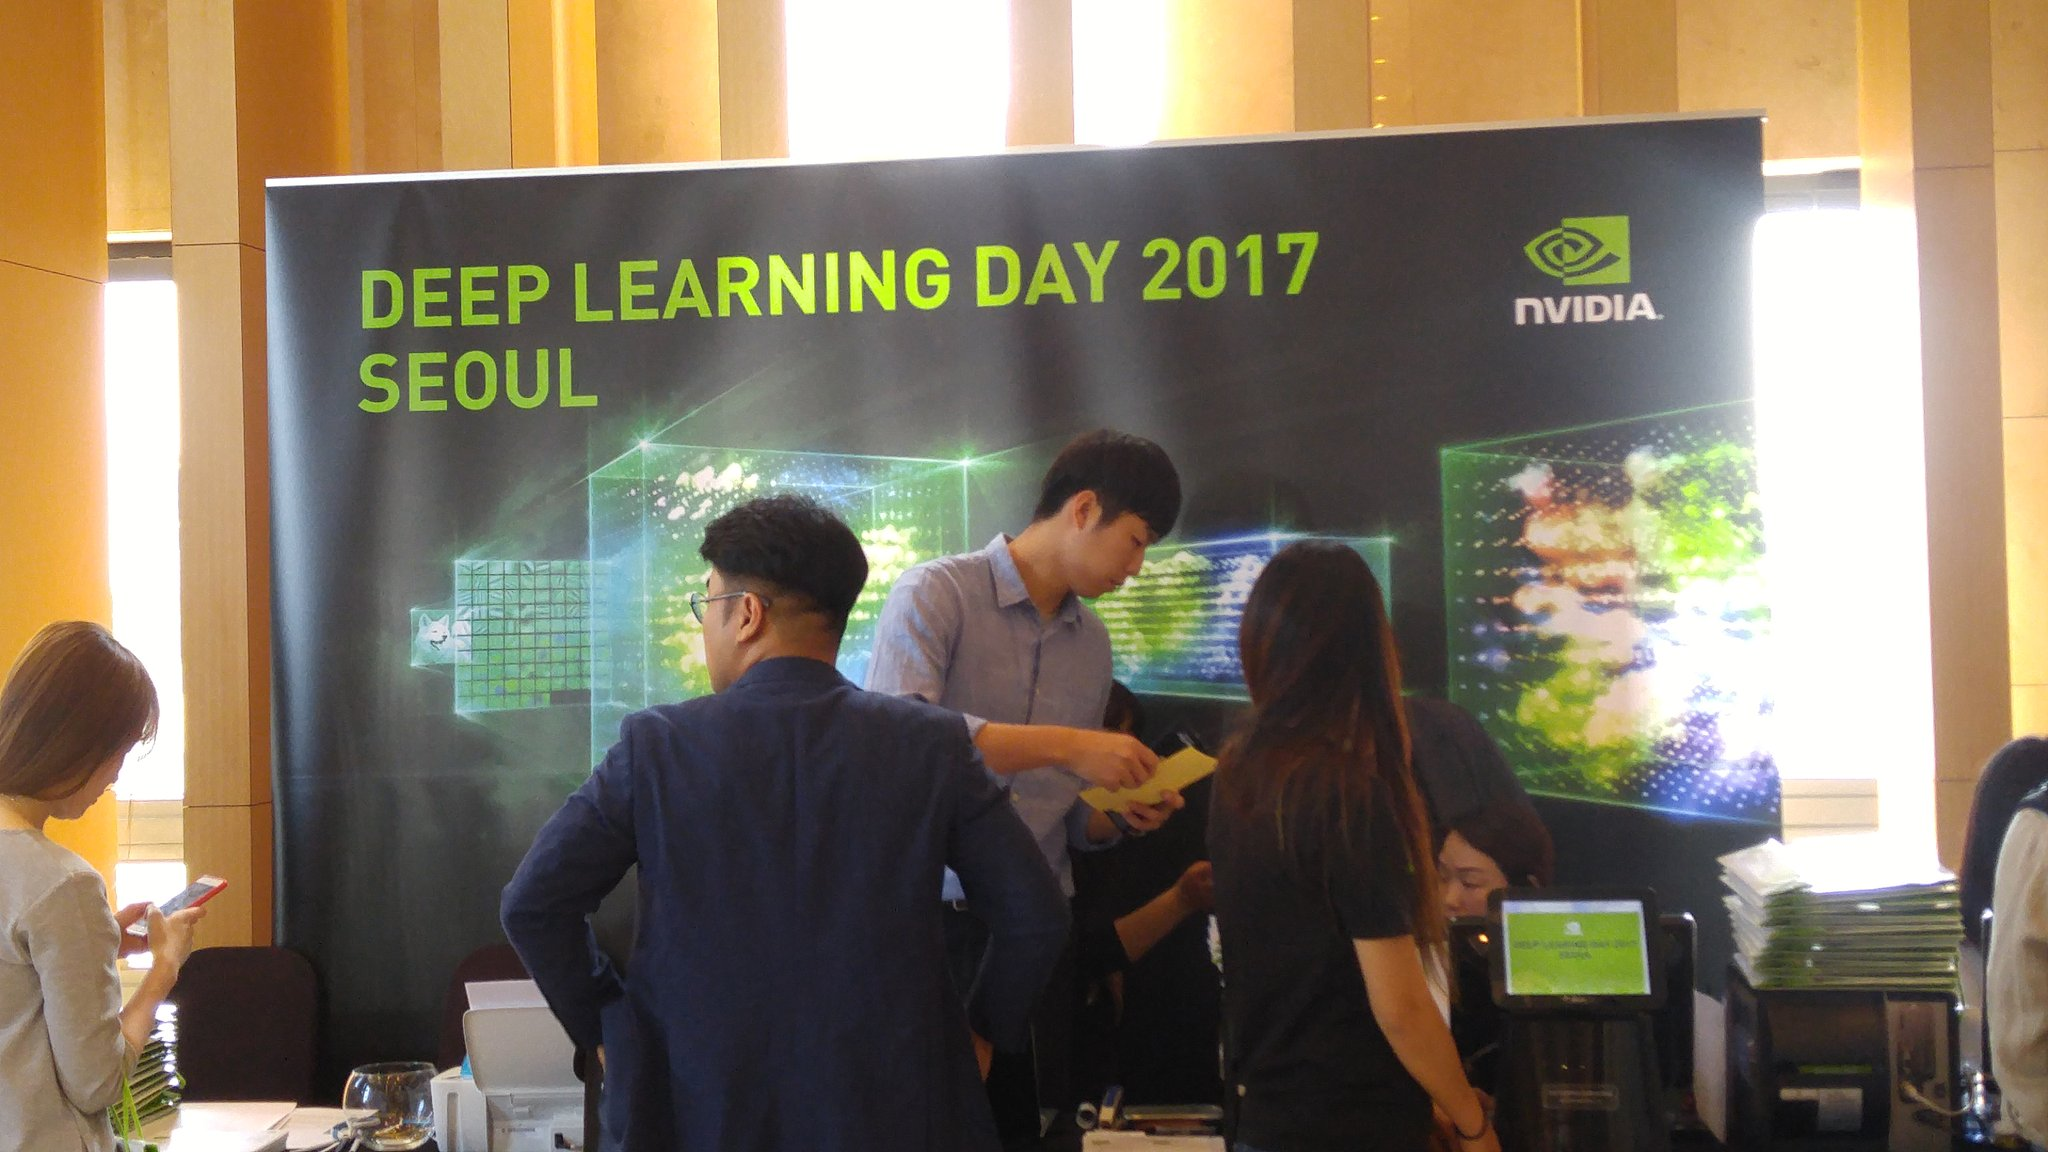 Getting ready to kick off @NvidiaAI ##deeplearning day in Seoul https://t.co/Emththc3TM